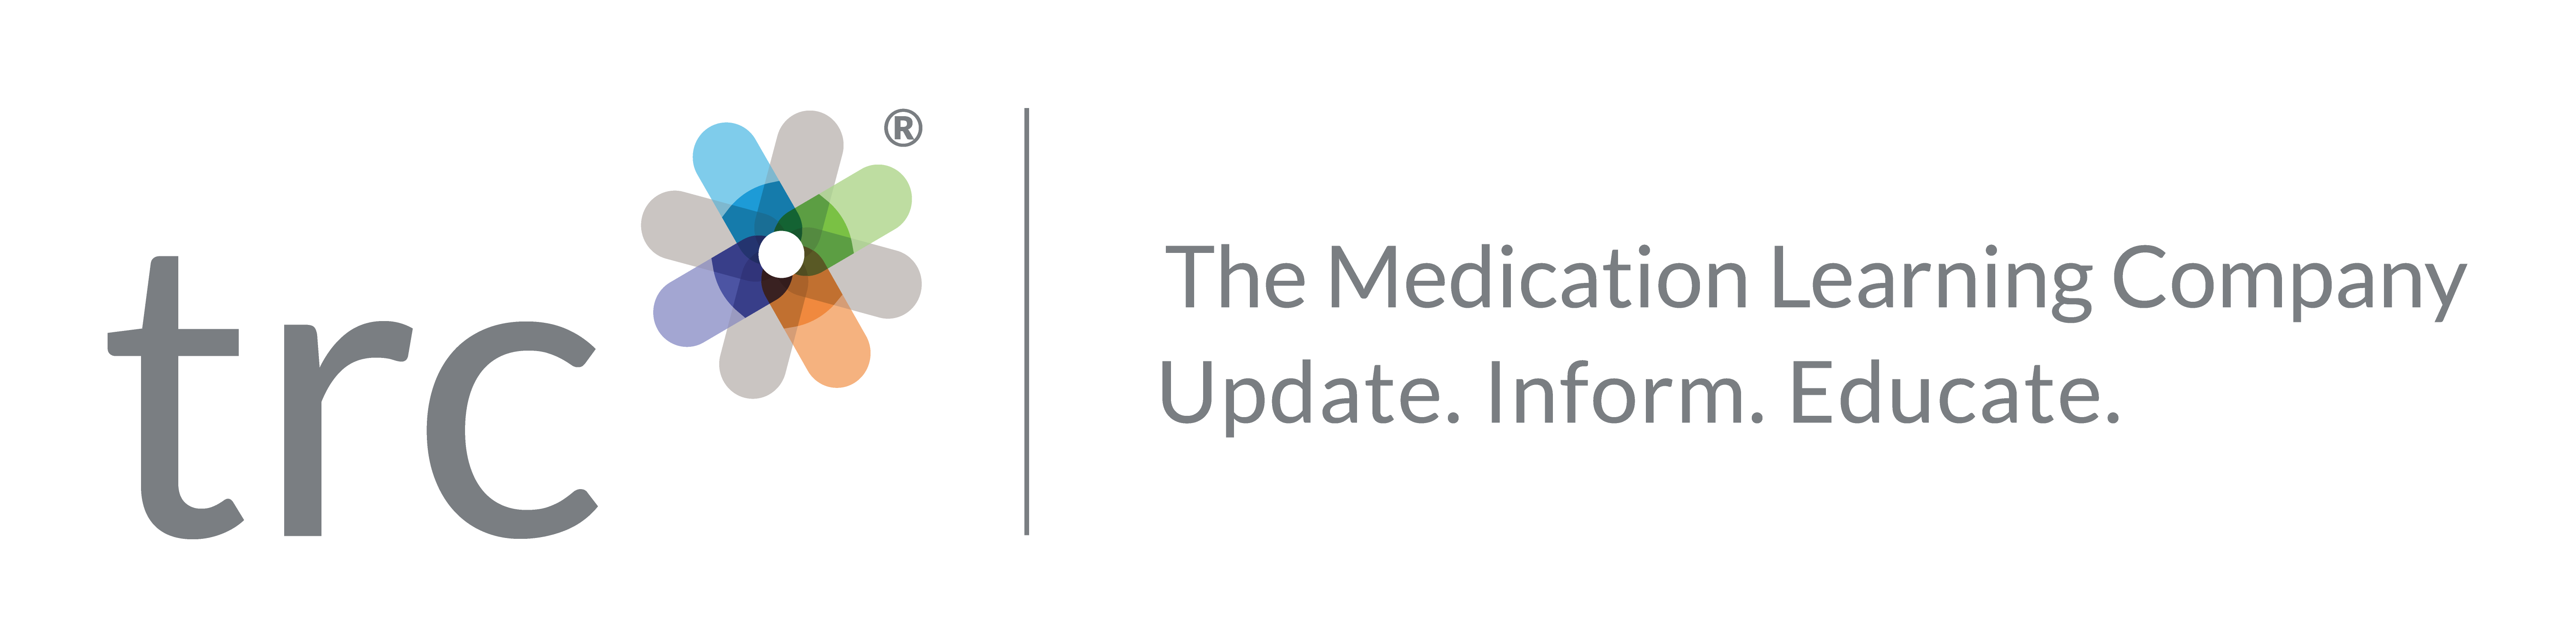 TRC   The Medication Learning Company. Update. Inform. Educate.